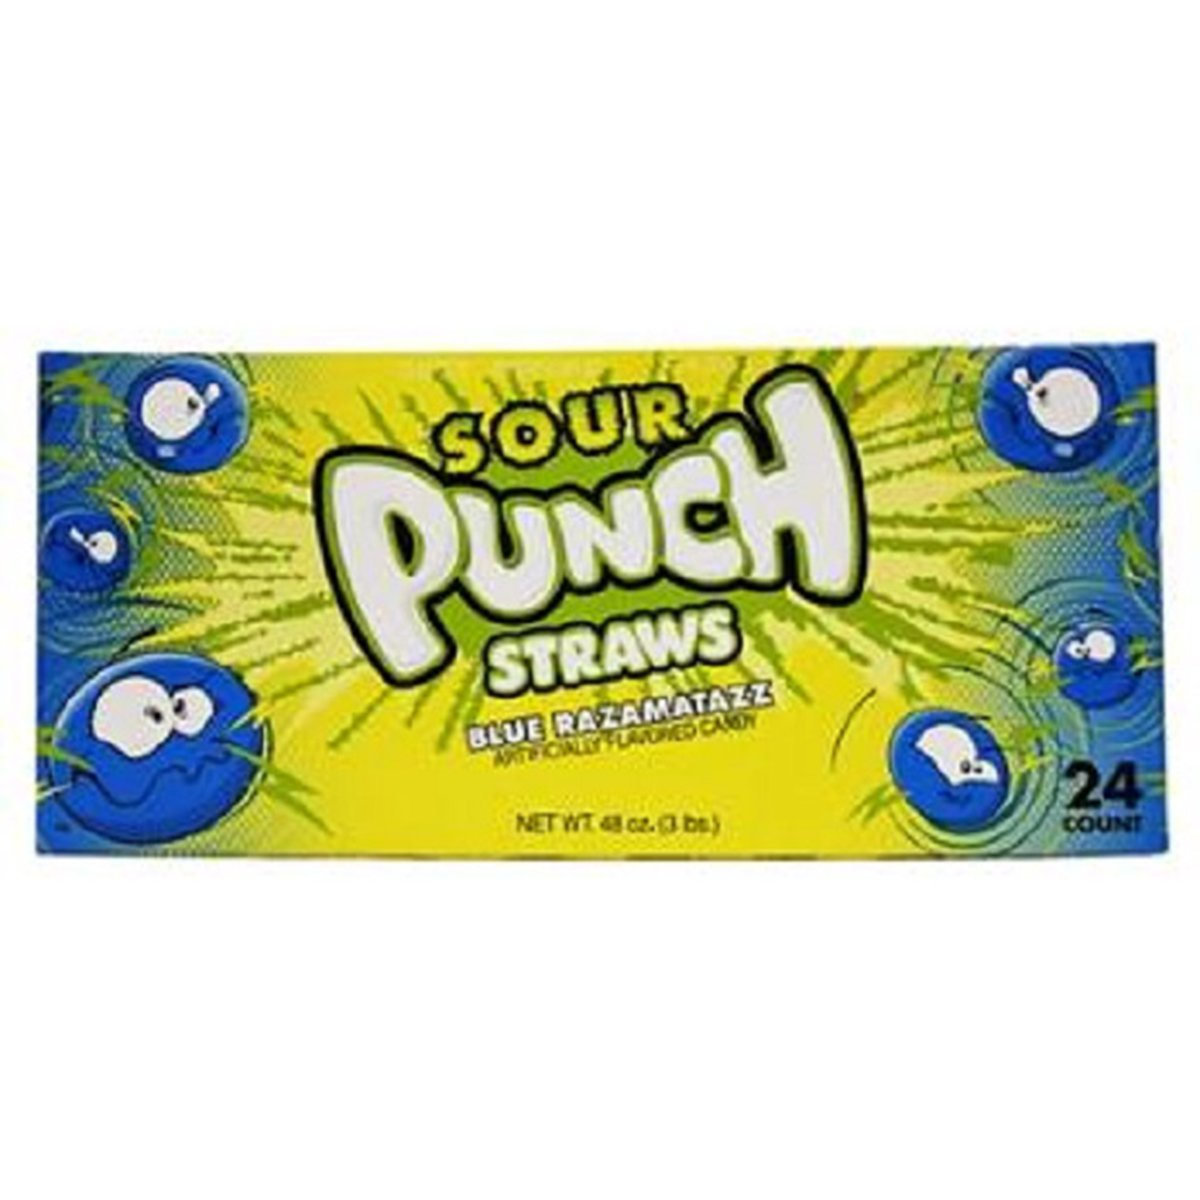 Product Of Sour Punch Straws, Blue Razamatazz, Count 24 (2 oz) - Sugar Candy / Grab Varieties & Flavors by Product Of Sour Punch Straws